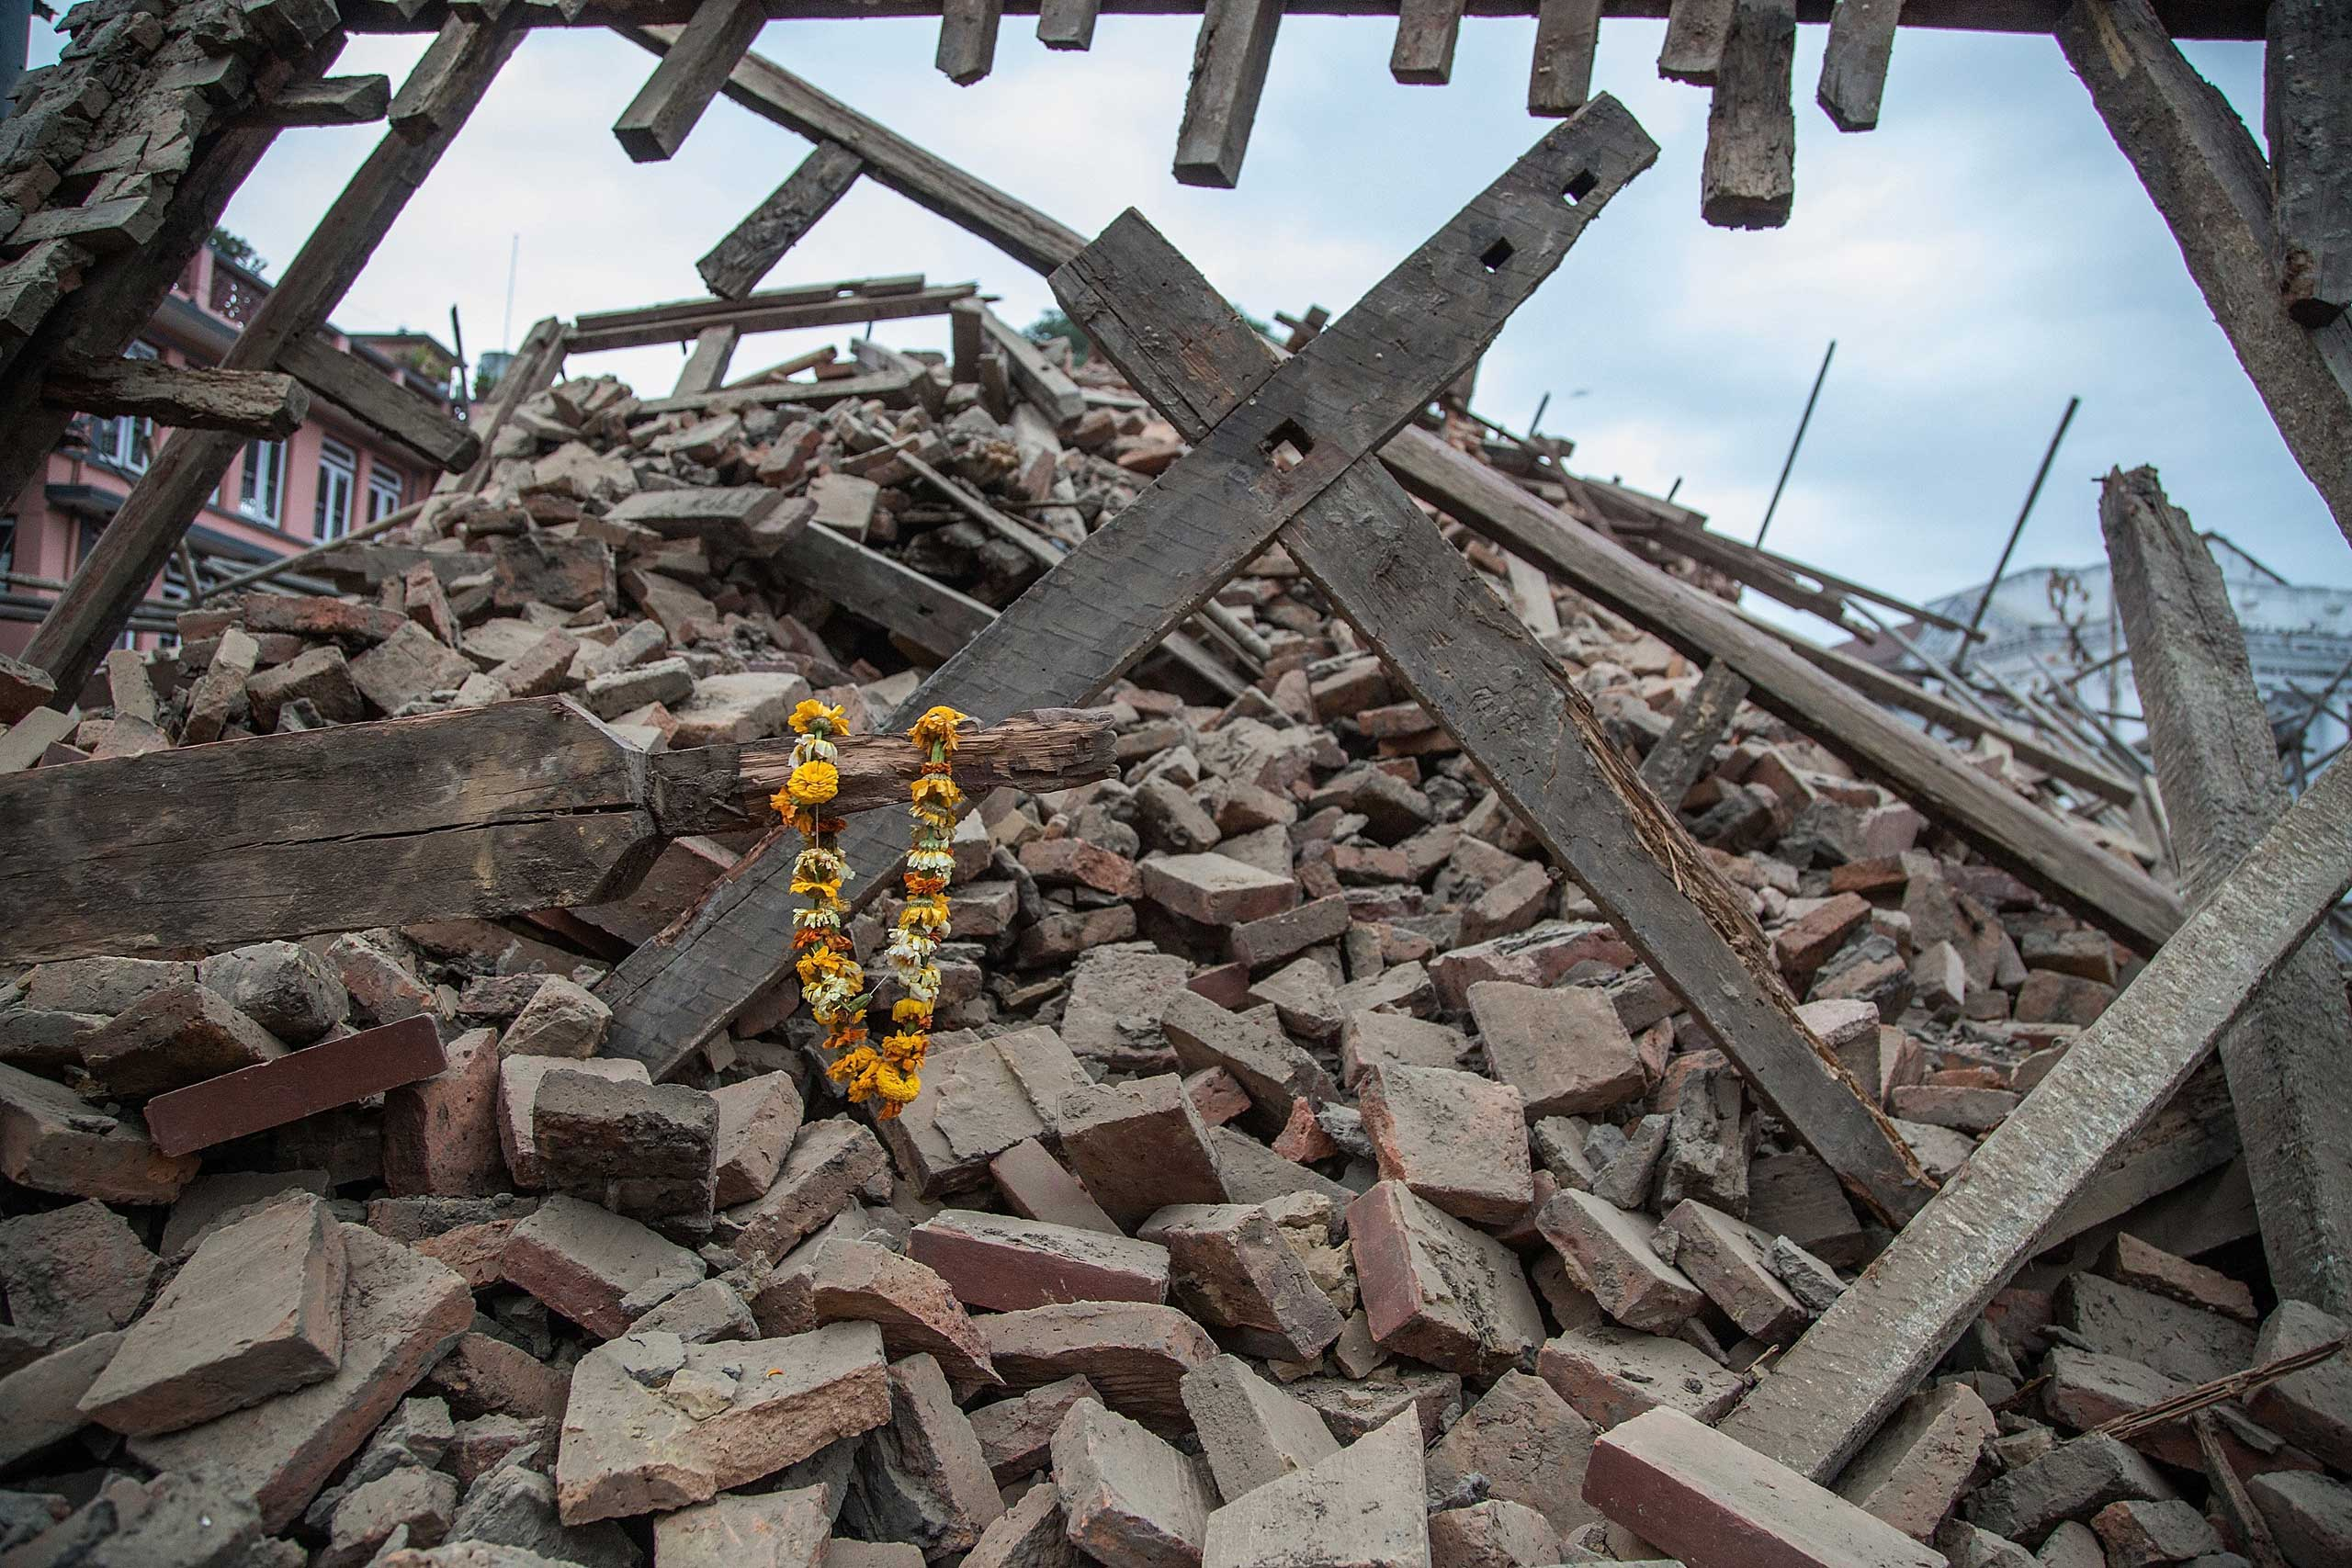 Flowers are left by survivors on top of debris from a collapsed building at Basantapur Durbar Square following an earthquake in Kathmandu on April 25, 2015.